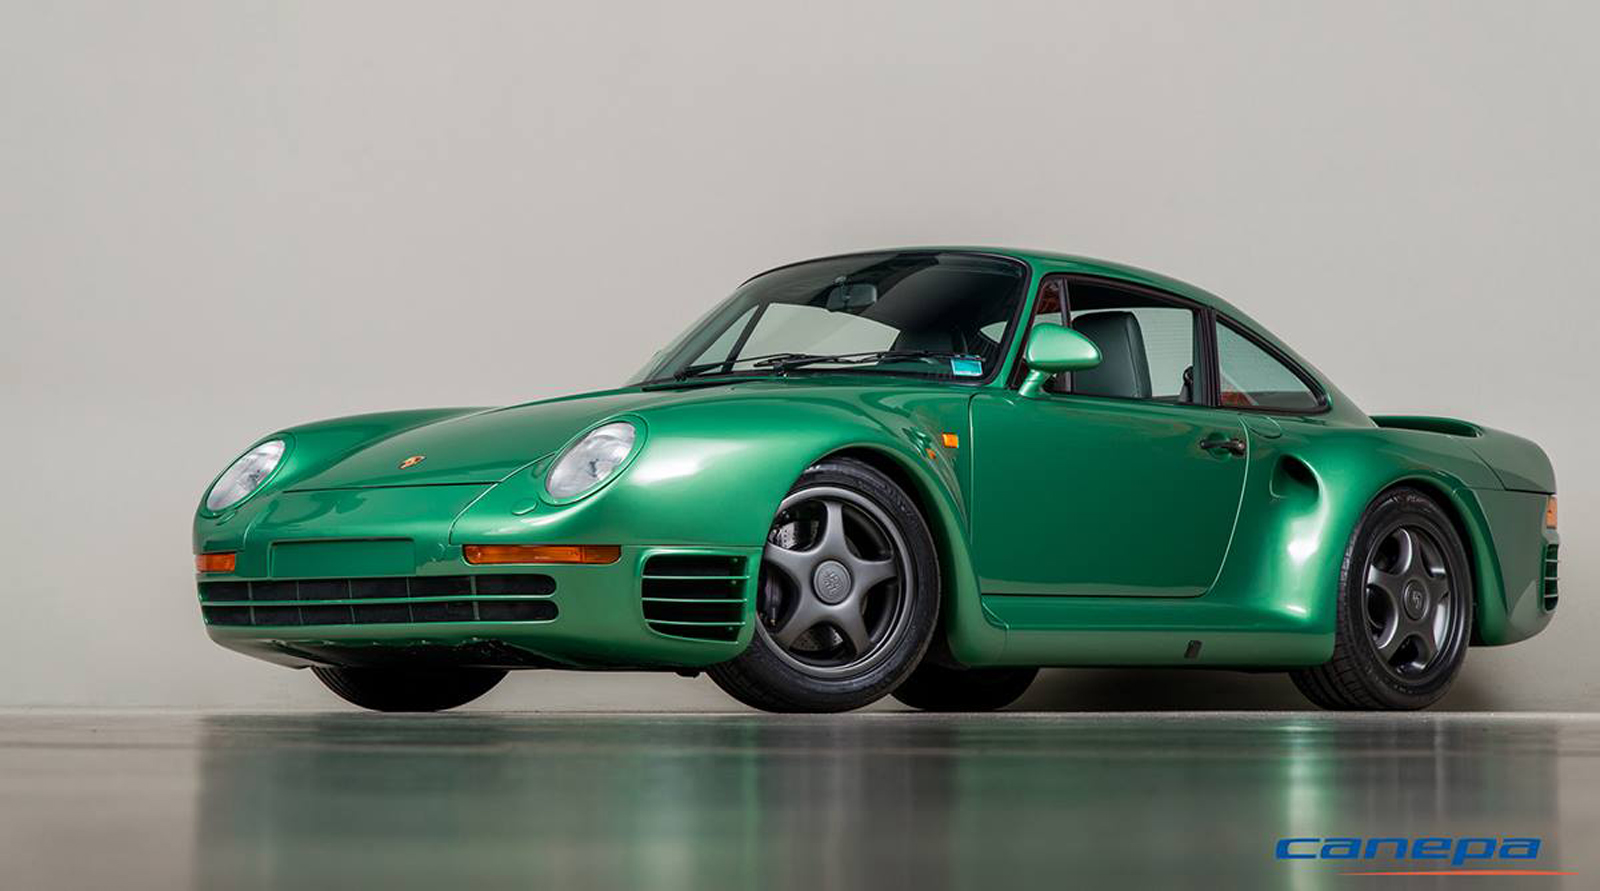 Latest Canepa Upgrade Kit Boosts Porsche 959 to 777 HP » AutoGuide ...